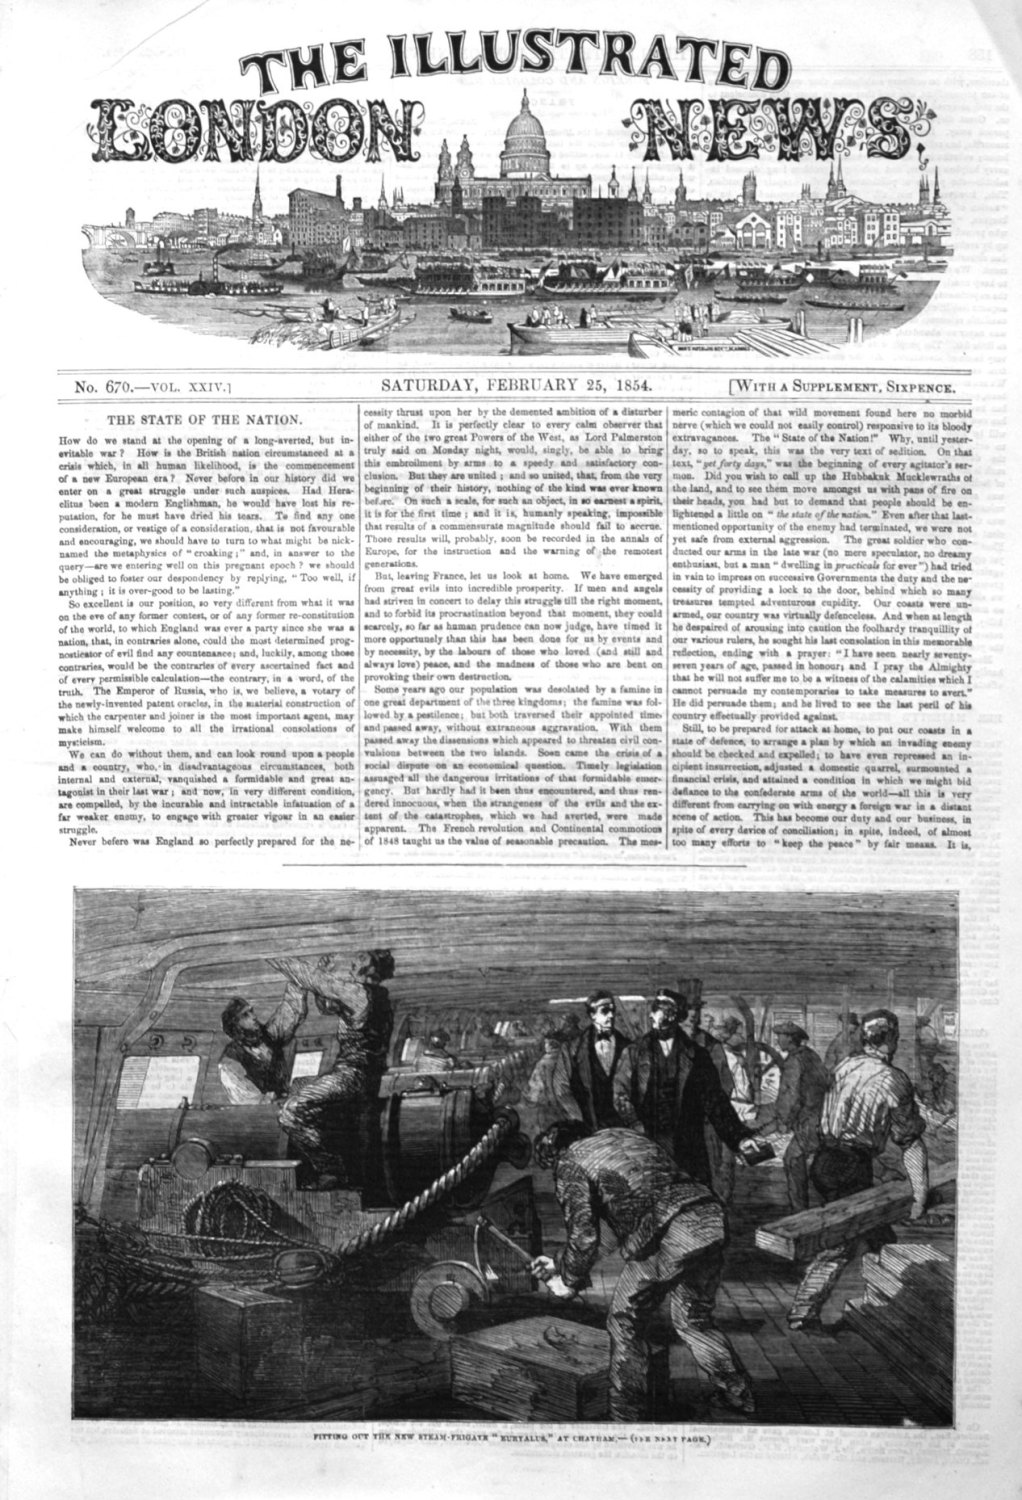 Illustrated London News, February 25th 1854.